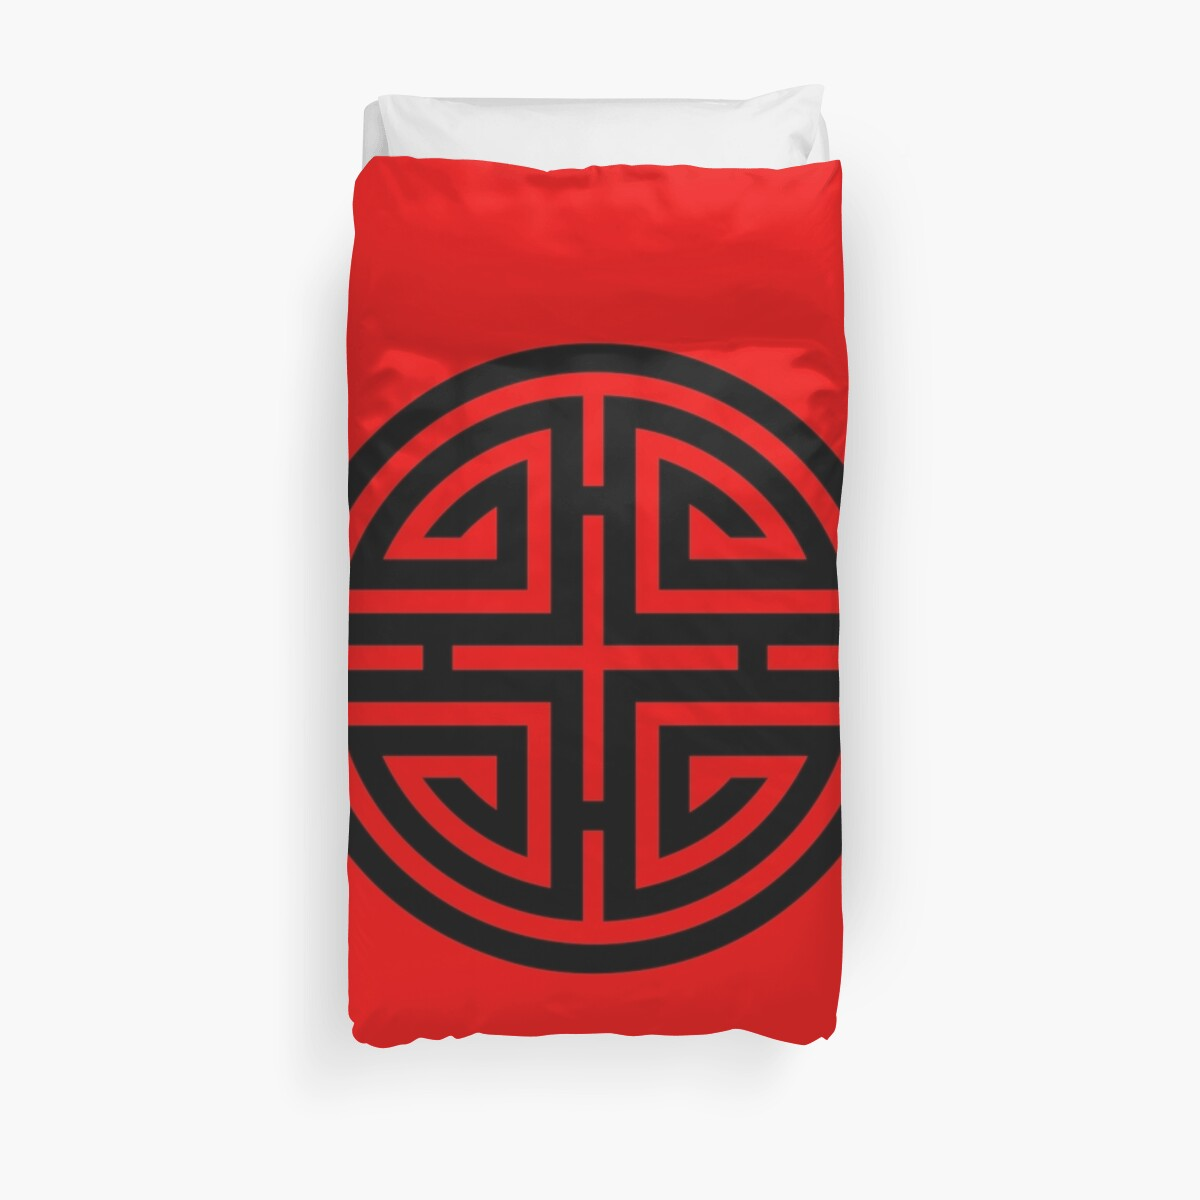 Chinese good fortune symbol images symbol and sign ideas four blessings chinese good luck symbol duvet covers by anne four blessings chinese good luck symbol buycottarizona Images